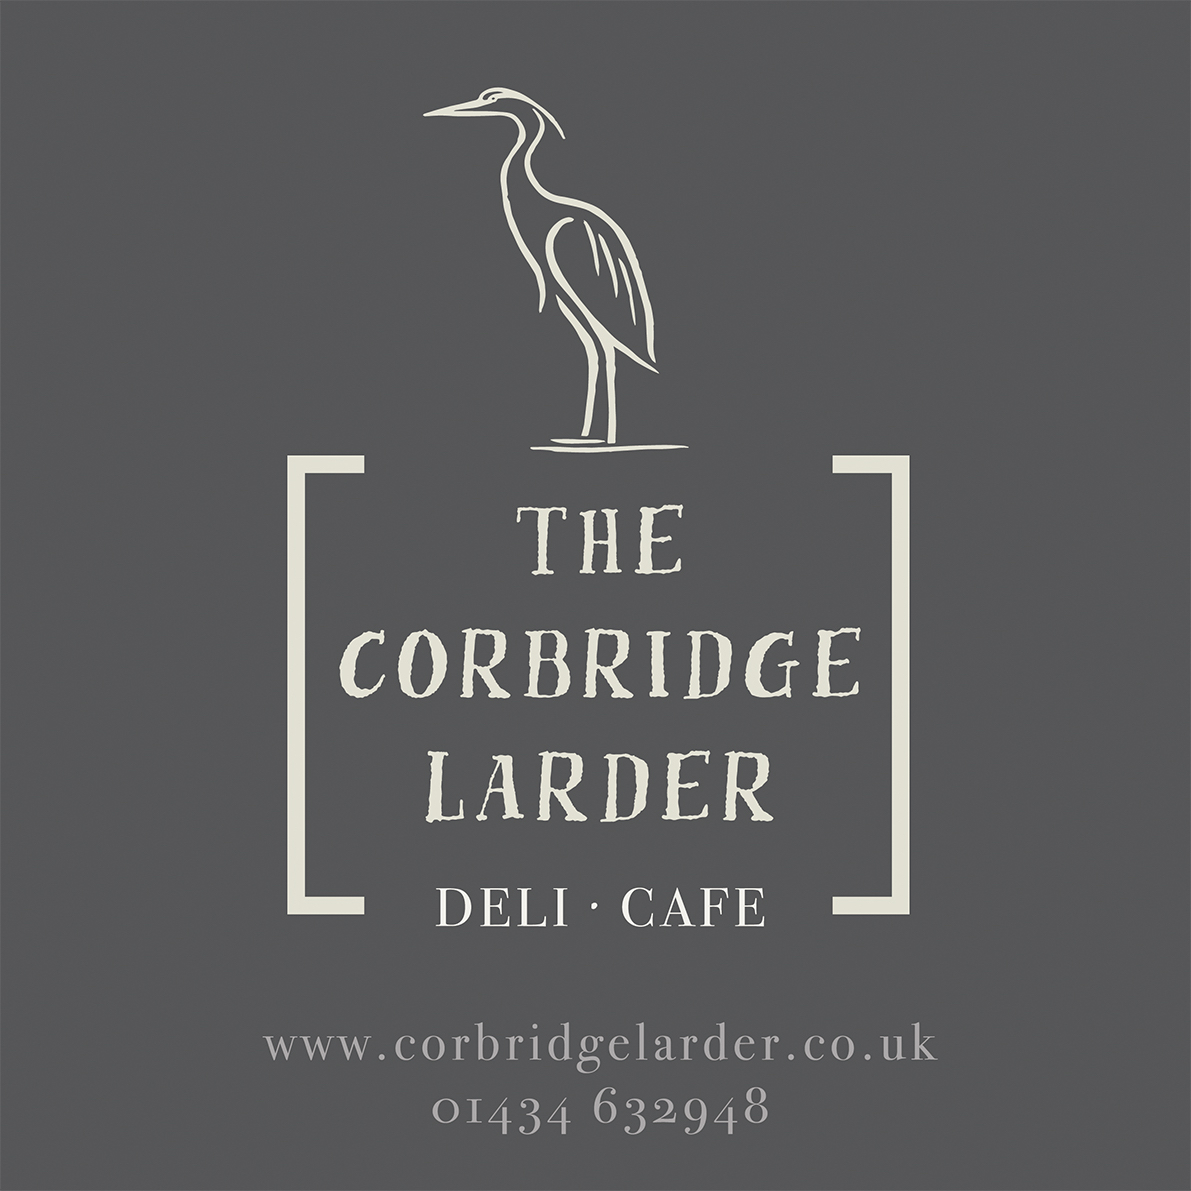 The Corbridge Larder stocking The Canny Candy Gadgies